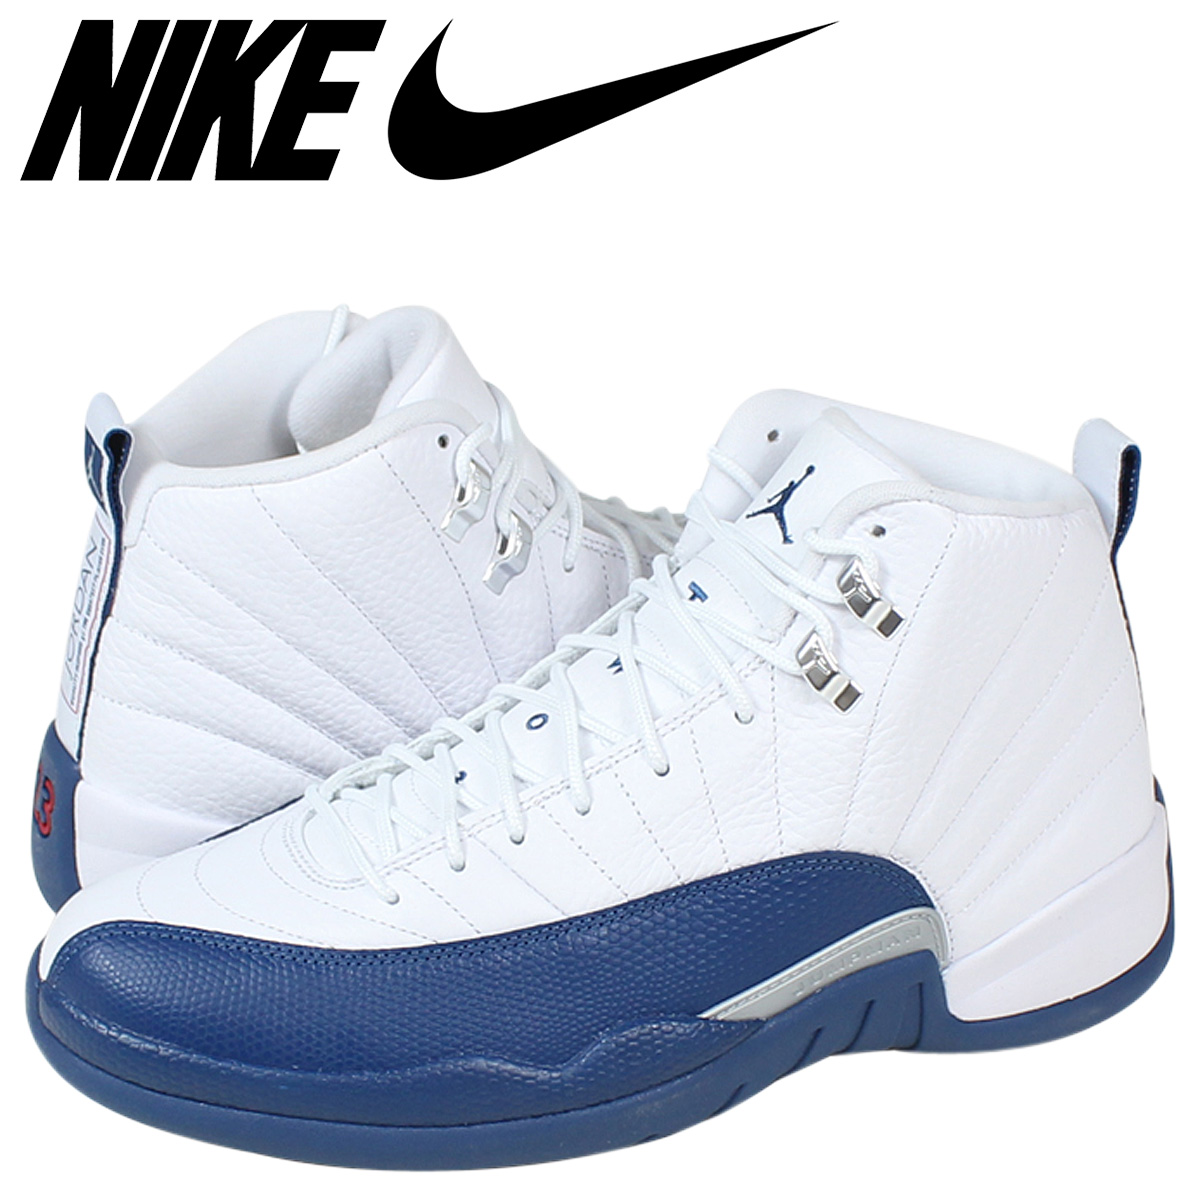 super popular 7ac59 38996 Nike NIKE Air Jordan sneakers AIR JORDAN 12 FRENCH BLUE Air Jordan 12  French blue 130690 - 113 white mens